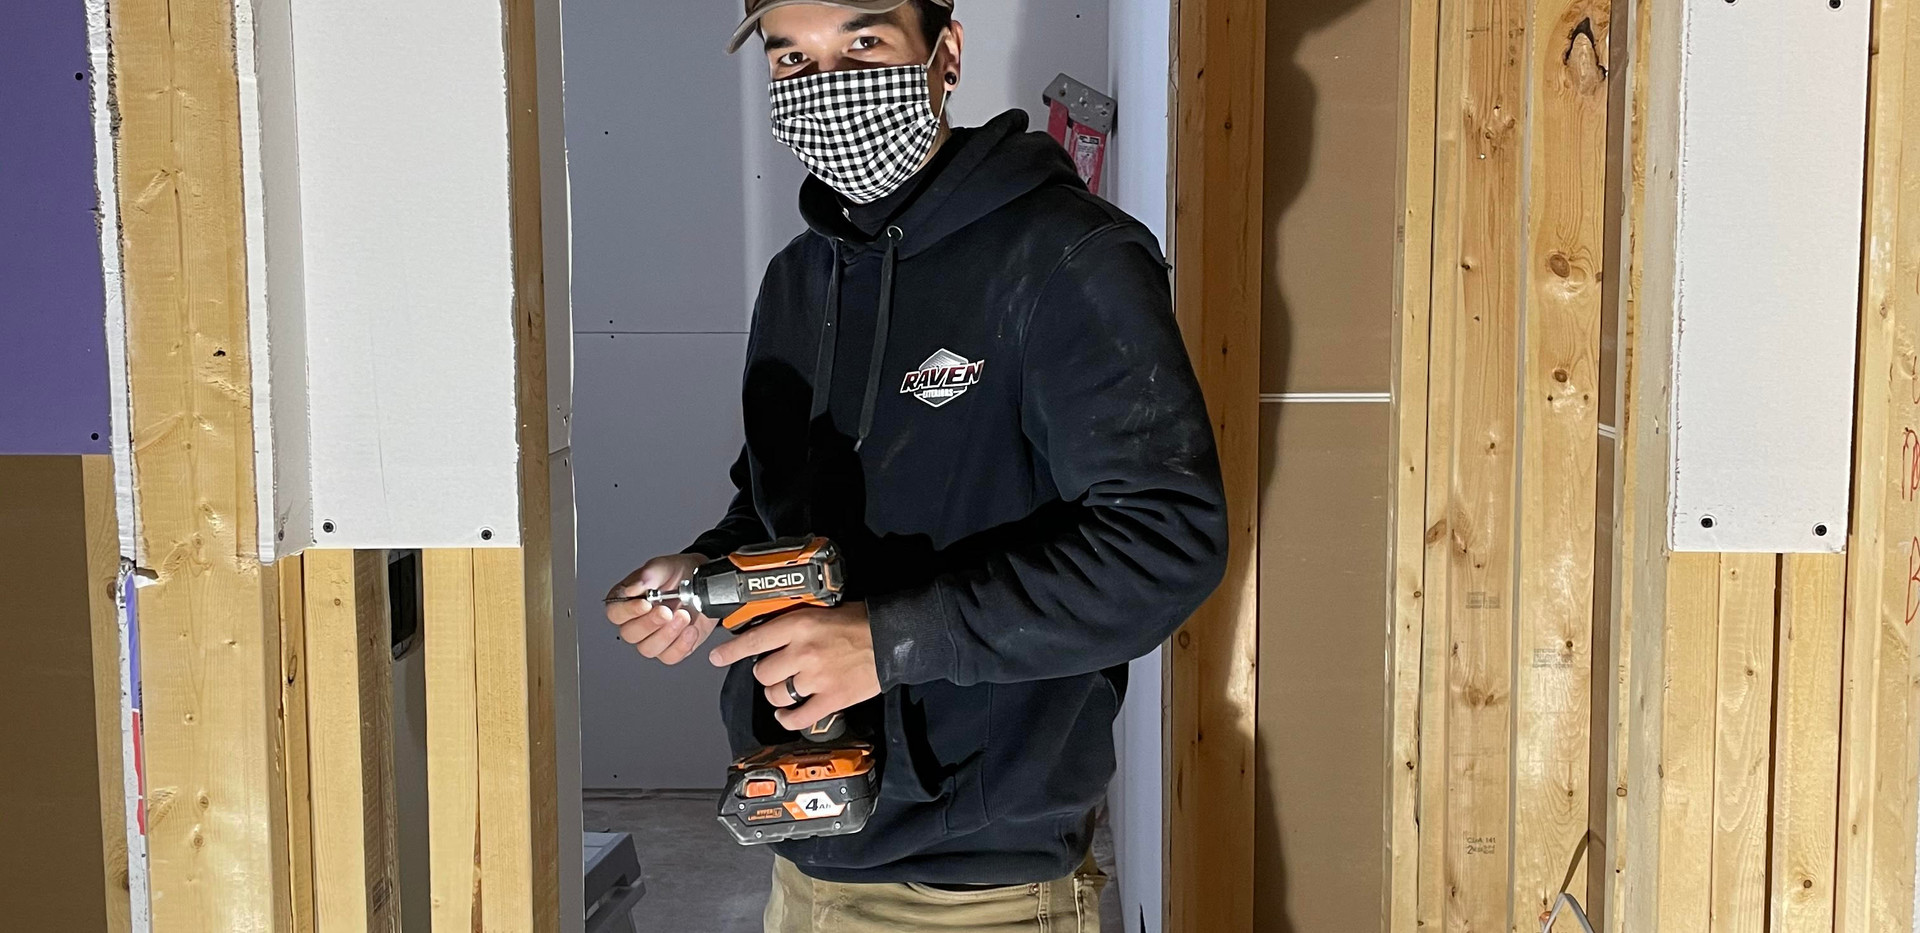 Mike hanging drywall